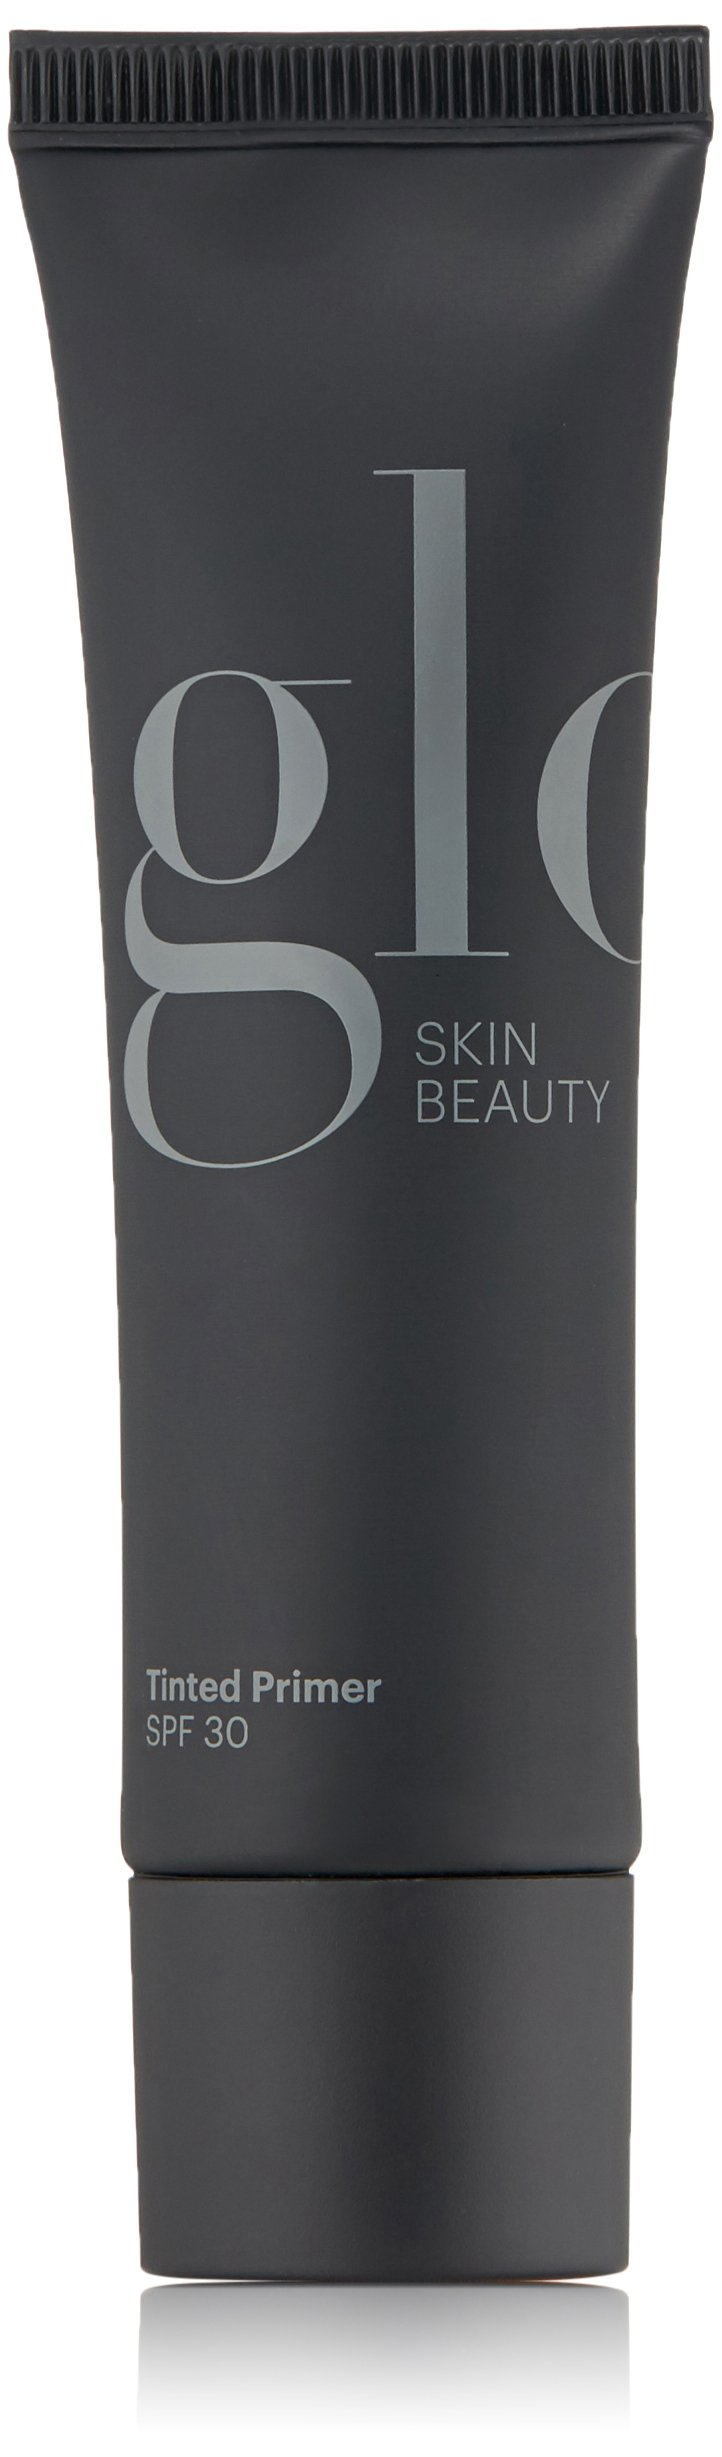 Glo Skin Beauty Tinted Primer SPF 30 in Medium | Foundation Face Priming Tint with Sunscreen | 4 Shades, Satin Finish by Glo Skin Beauty